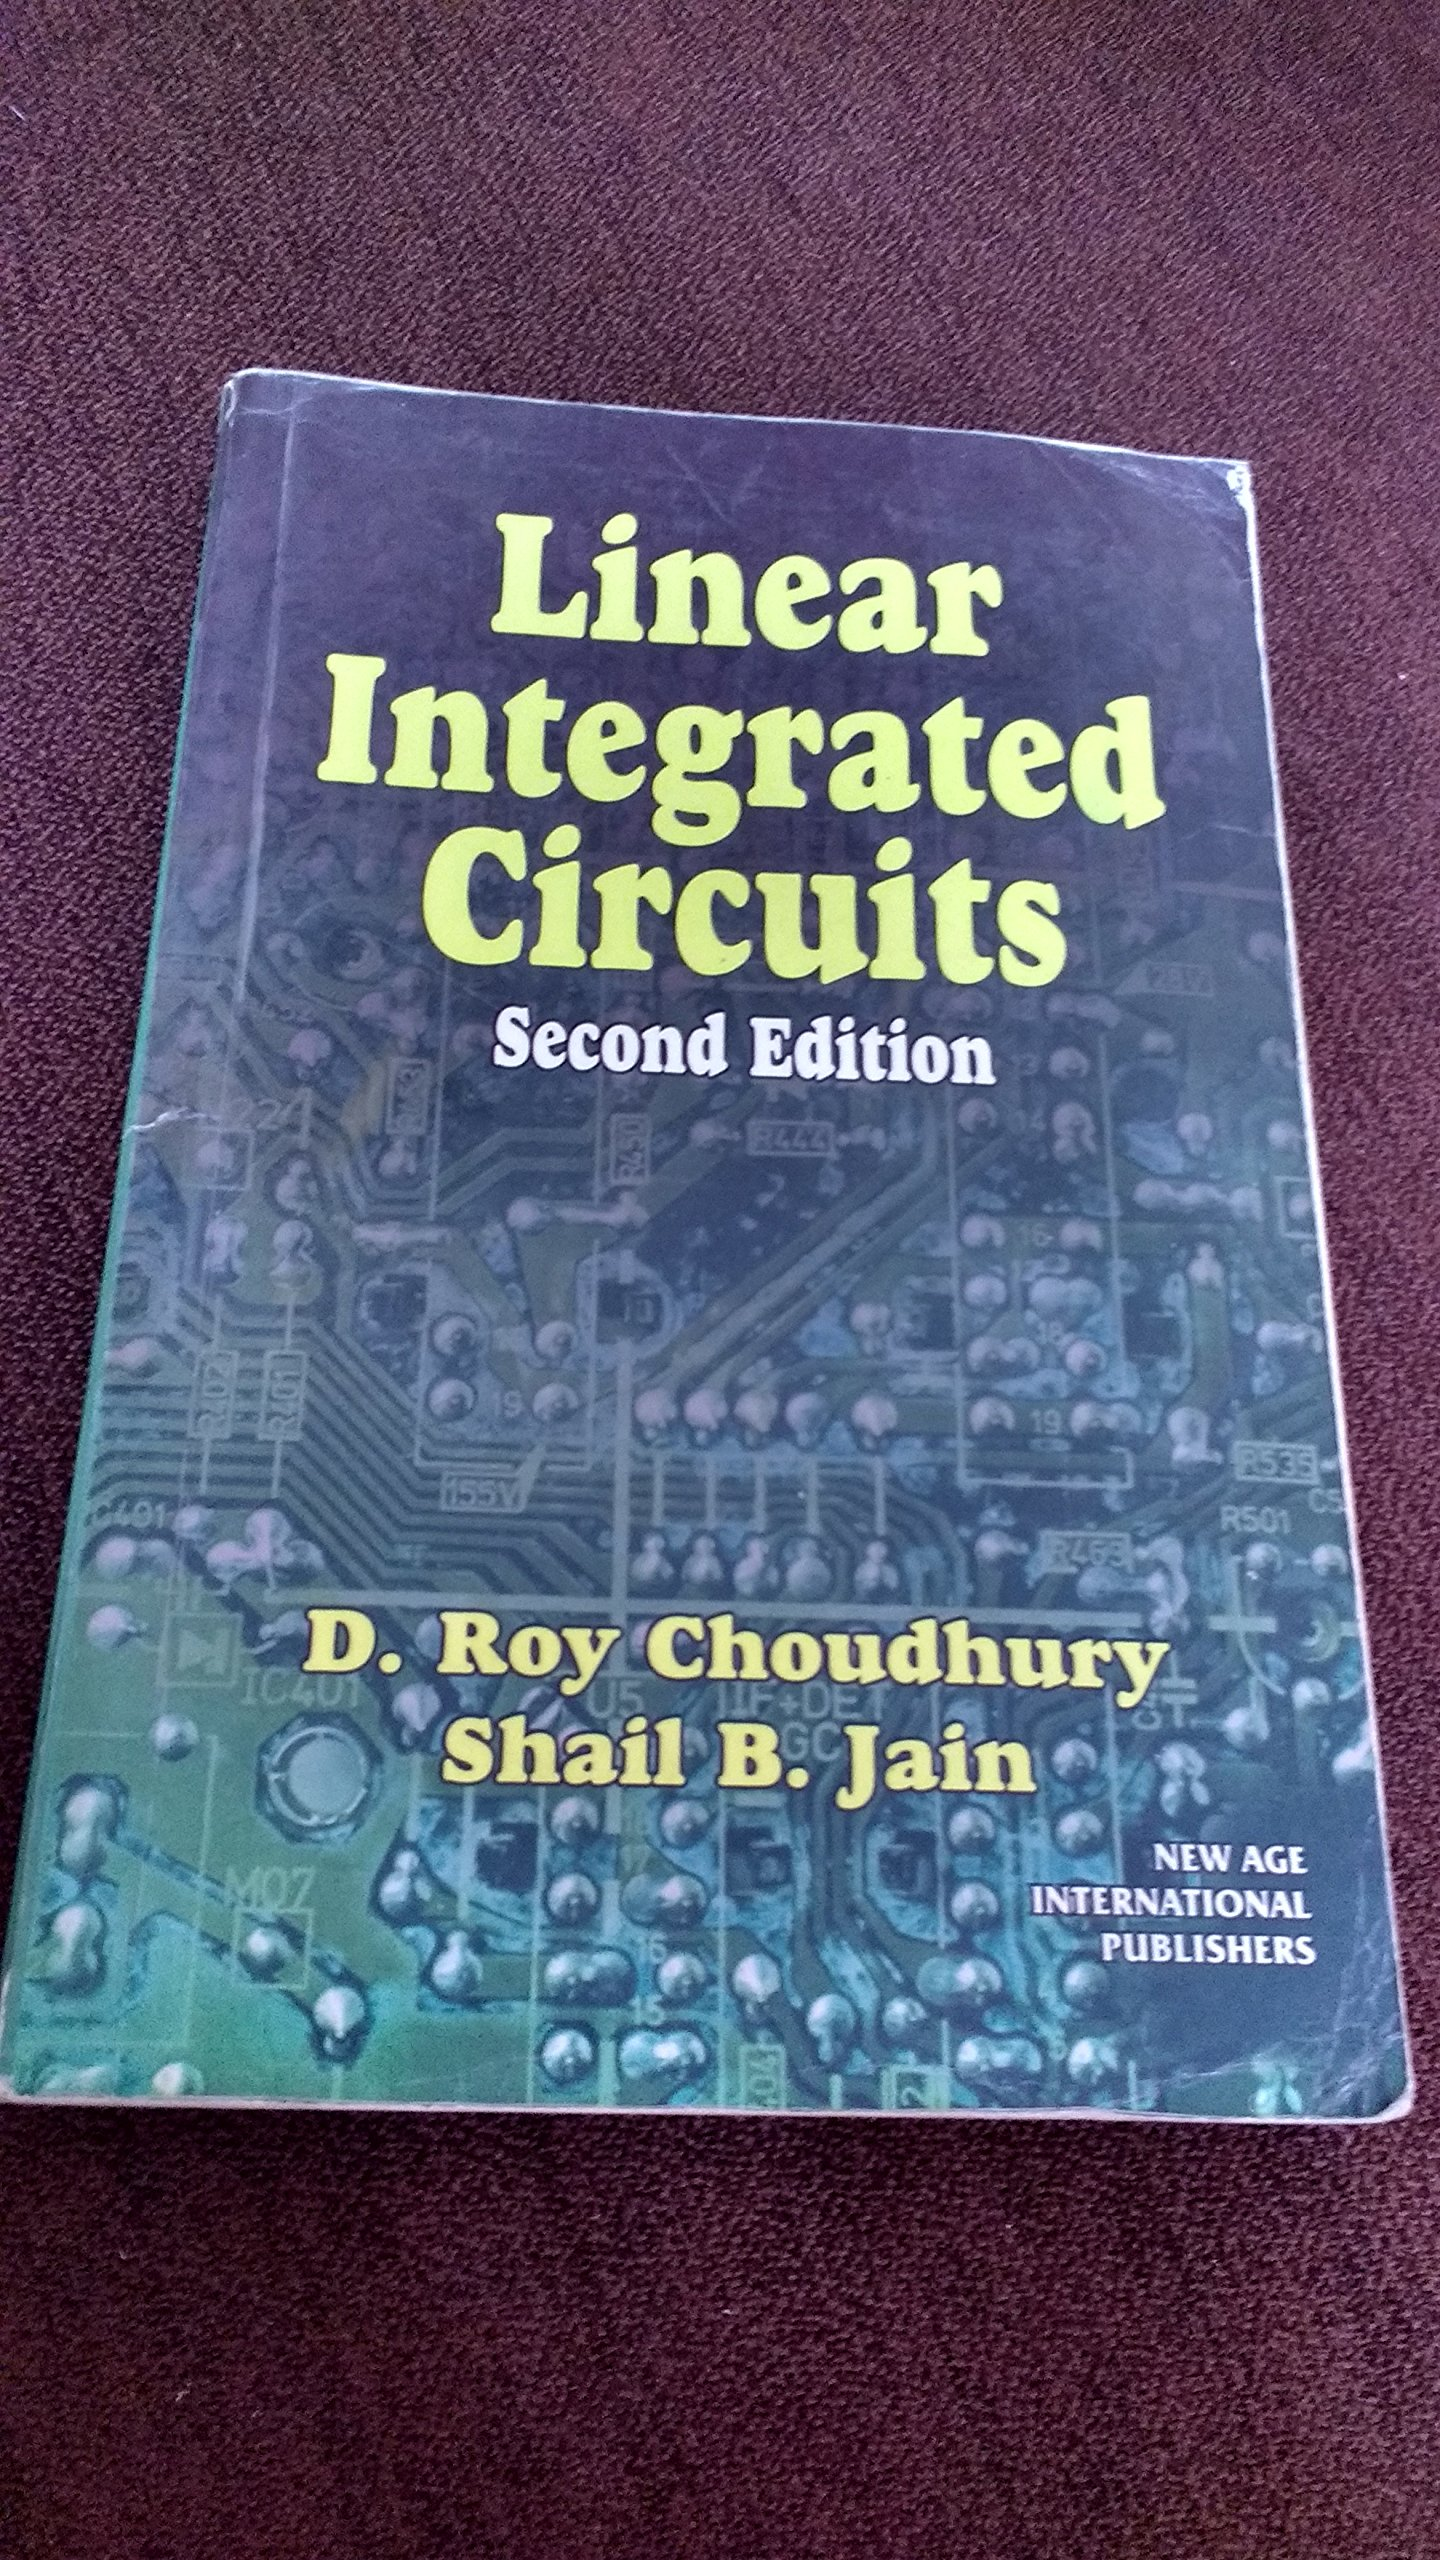 Network And Systems D Roy Choudhary Pdf